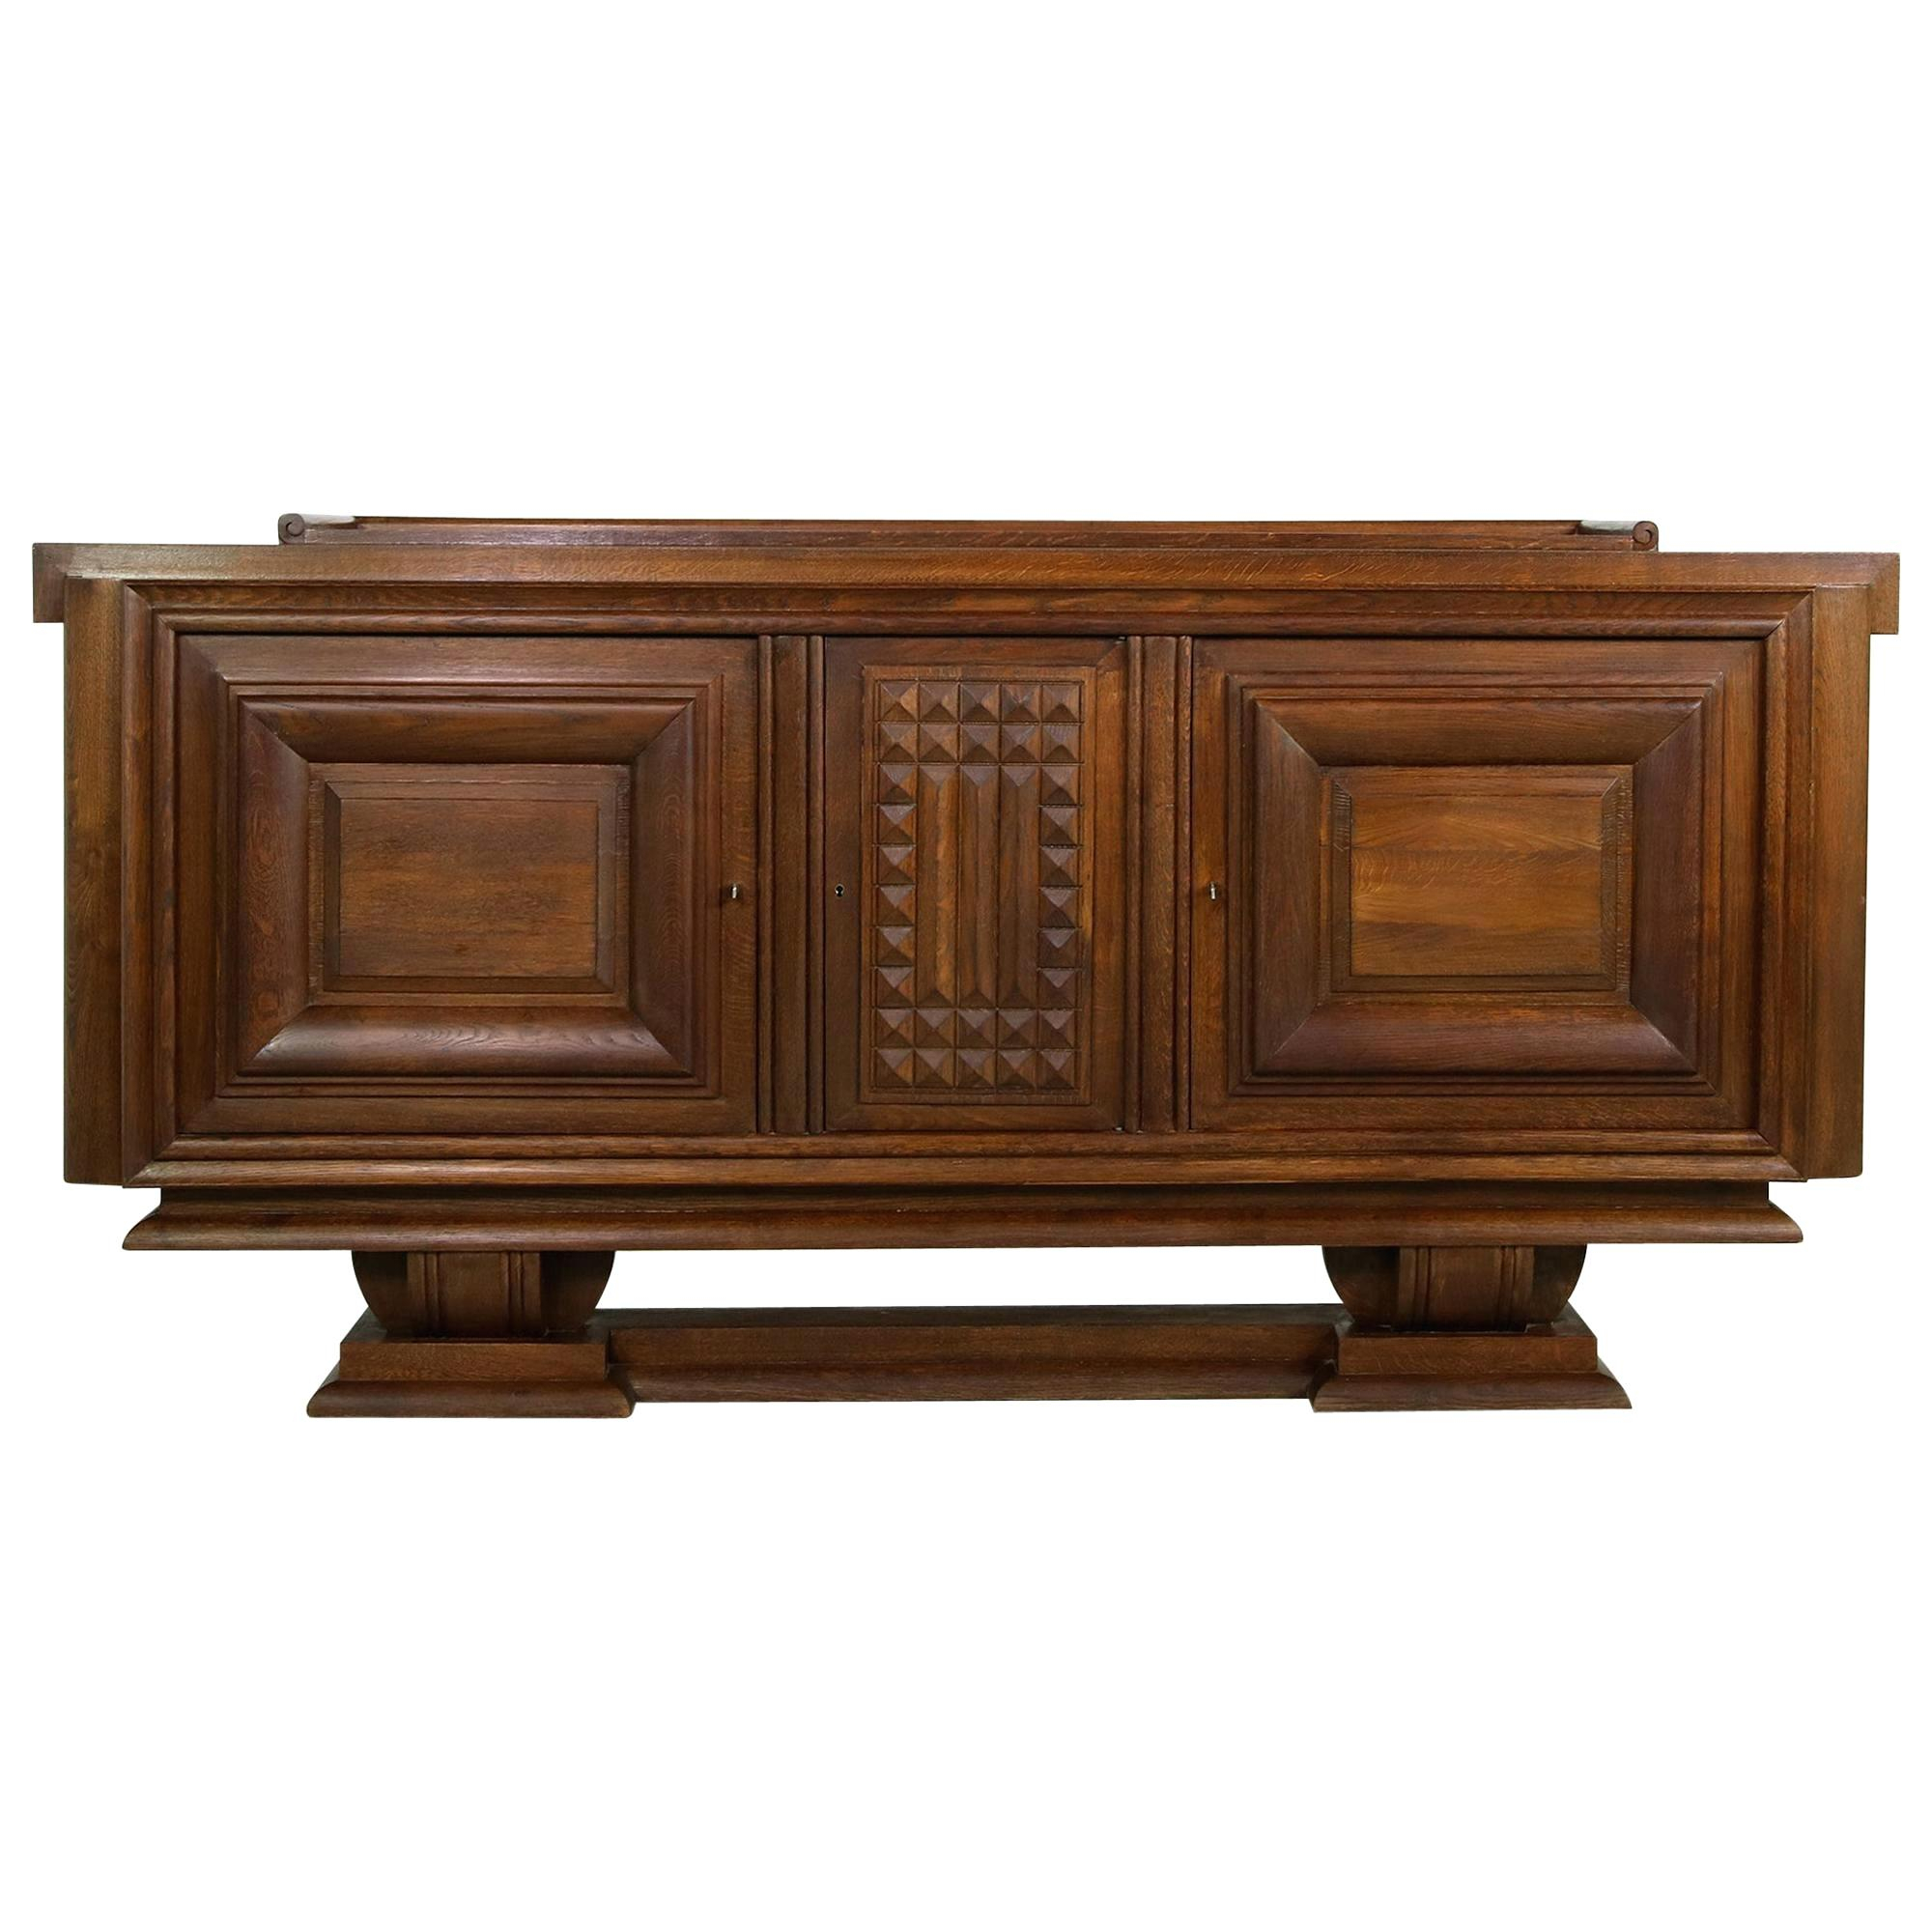 Likable Large Credenza Sideboard Furniture Outlet Chicago With Regard To South Miami Sideboards (View 18 of 30)